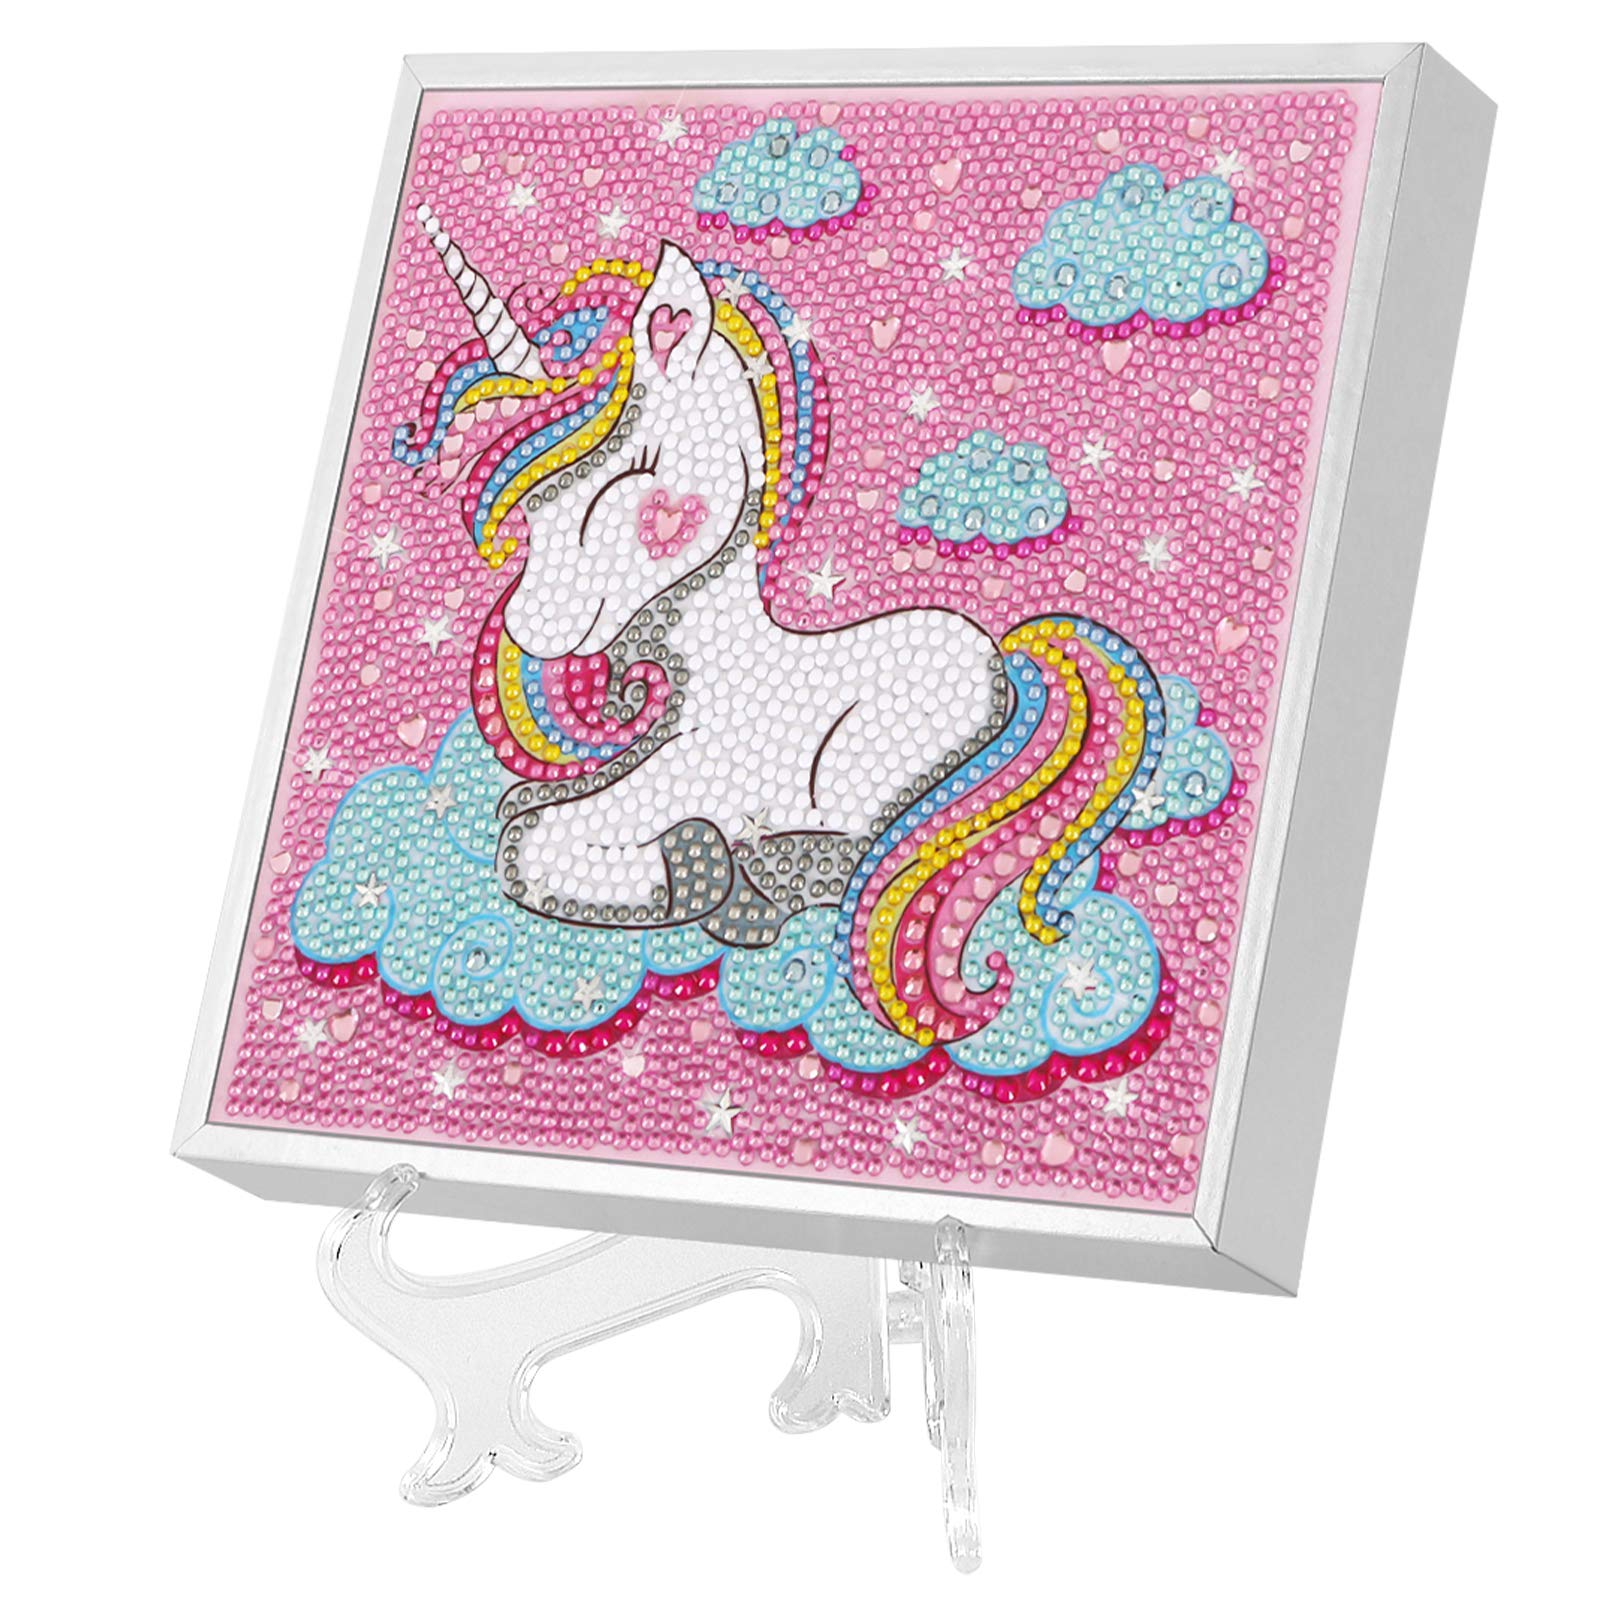 PJDRLLC Unicorn Diamond Painting for Kids with Wood Frame and Stand, Diamond Crafts Kit for Girls and Boys Ages 6 - 8 - 10 - 12, Great Fine Motor Skill Toys for Kids (New)